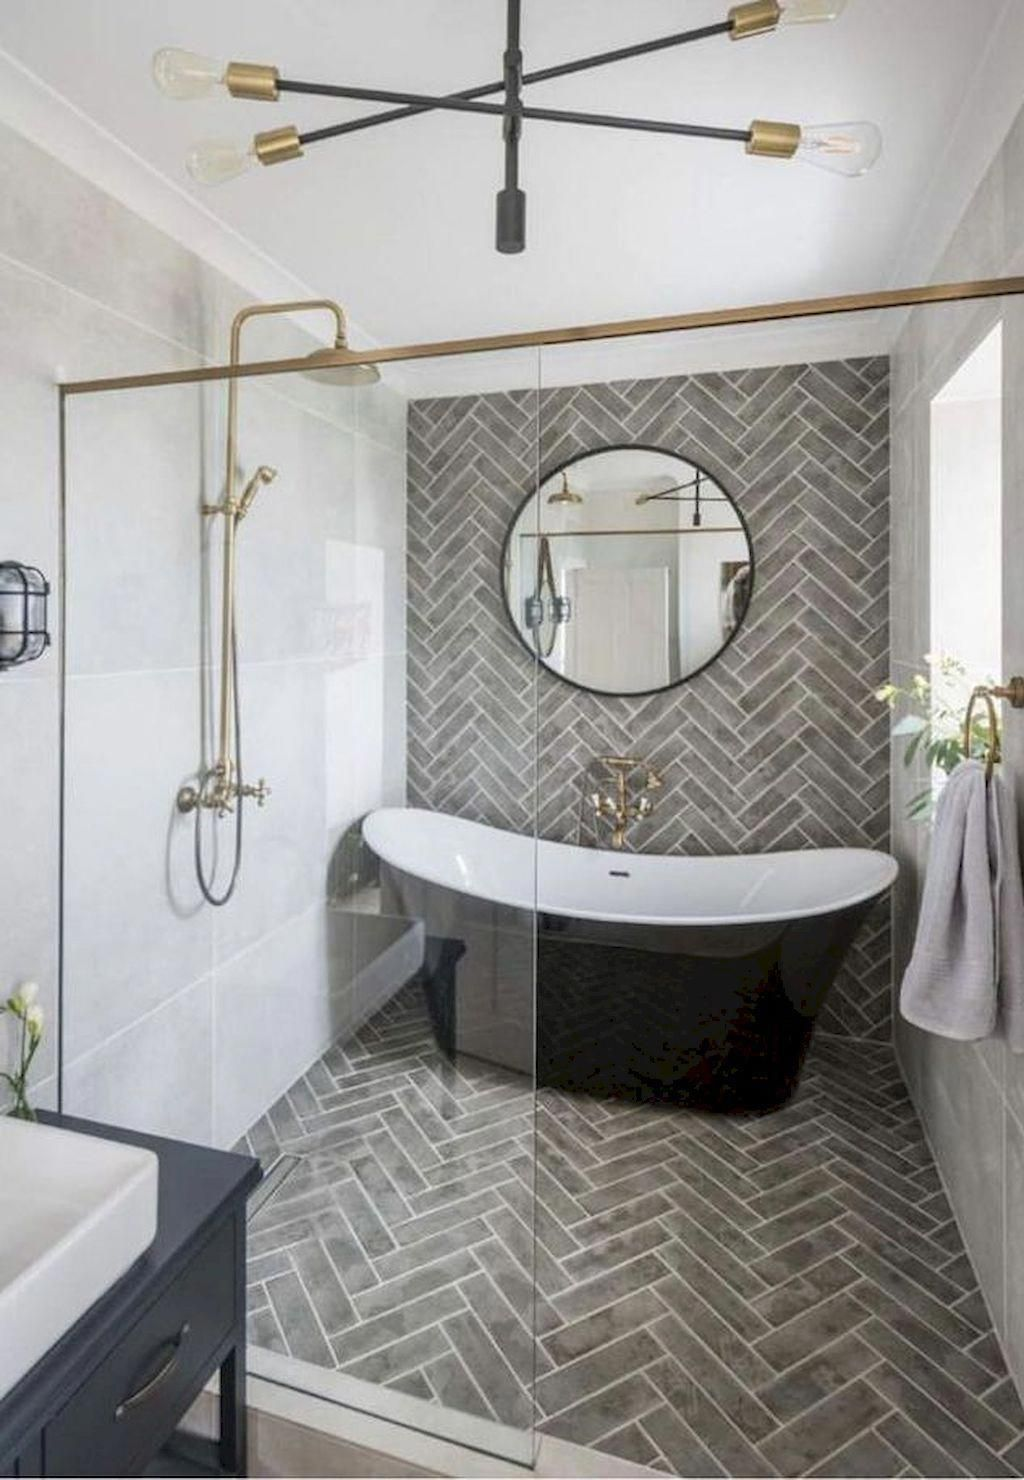 Simple and small bathrooms: 10 inspirations to decorate